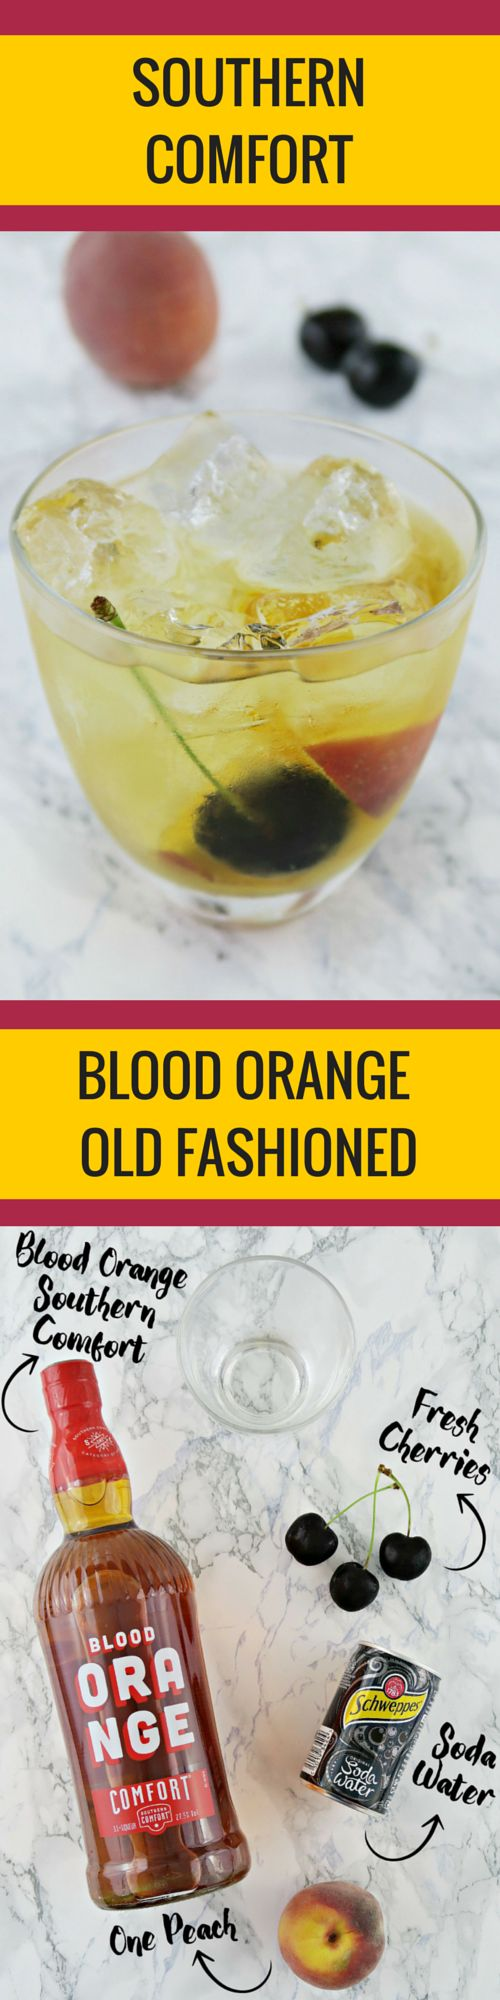 Southern Comfort Cocktail Recipe Ideas - Blood Orange Old Fashioned ...